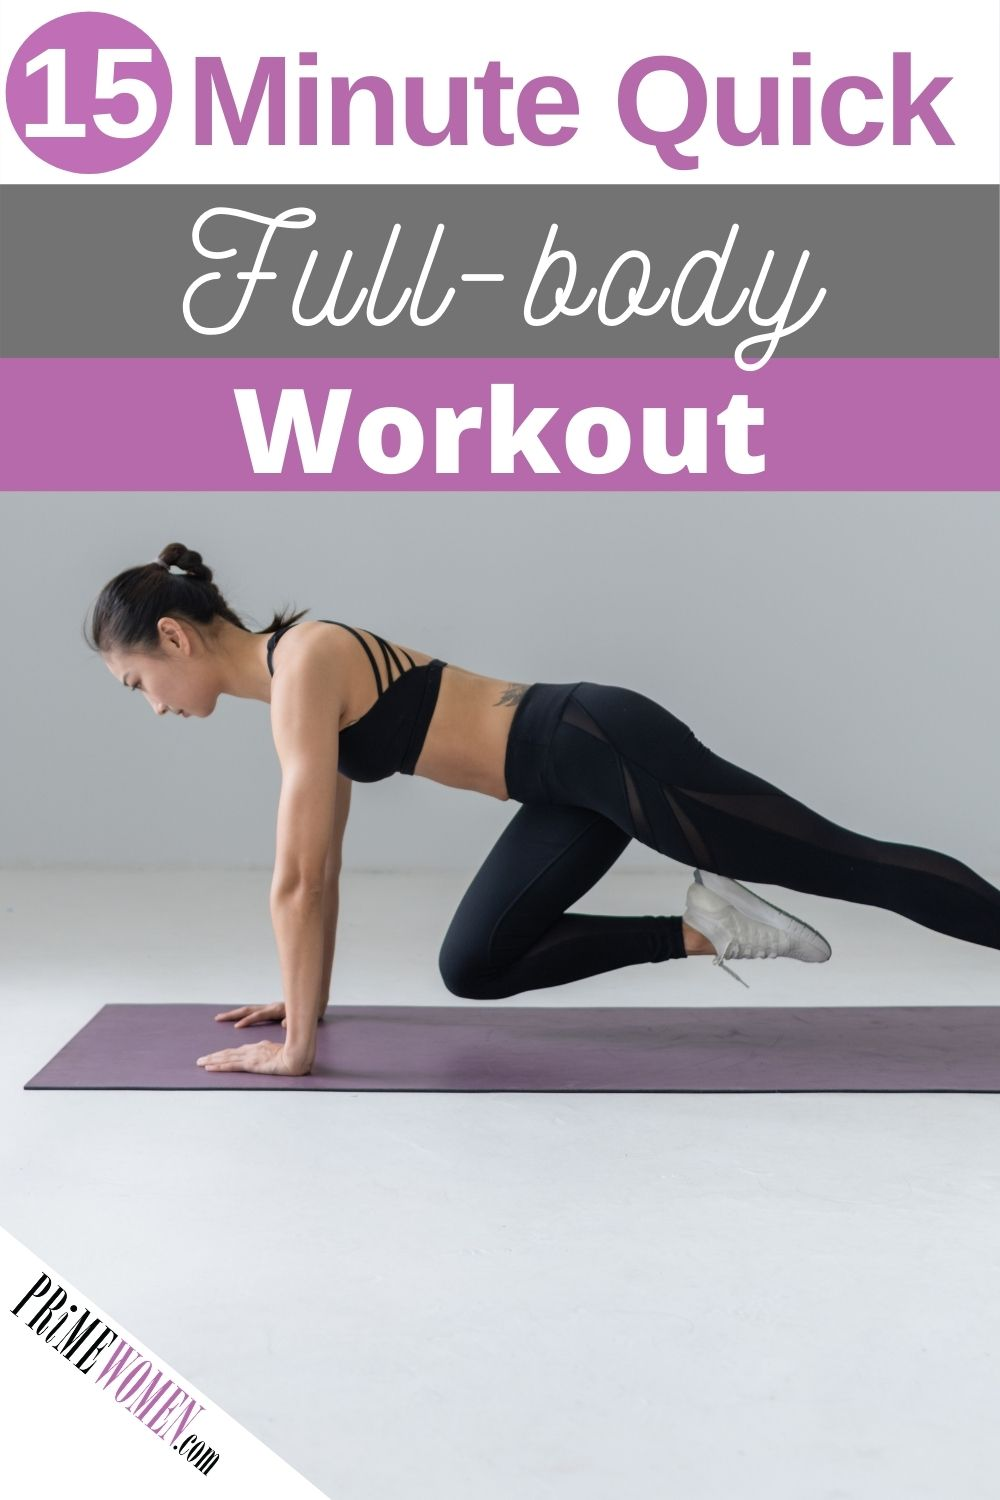 15 Minute Quick Full-body Workout